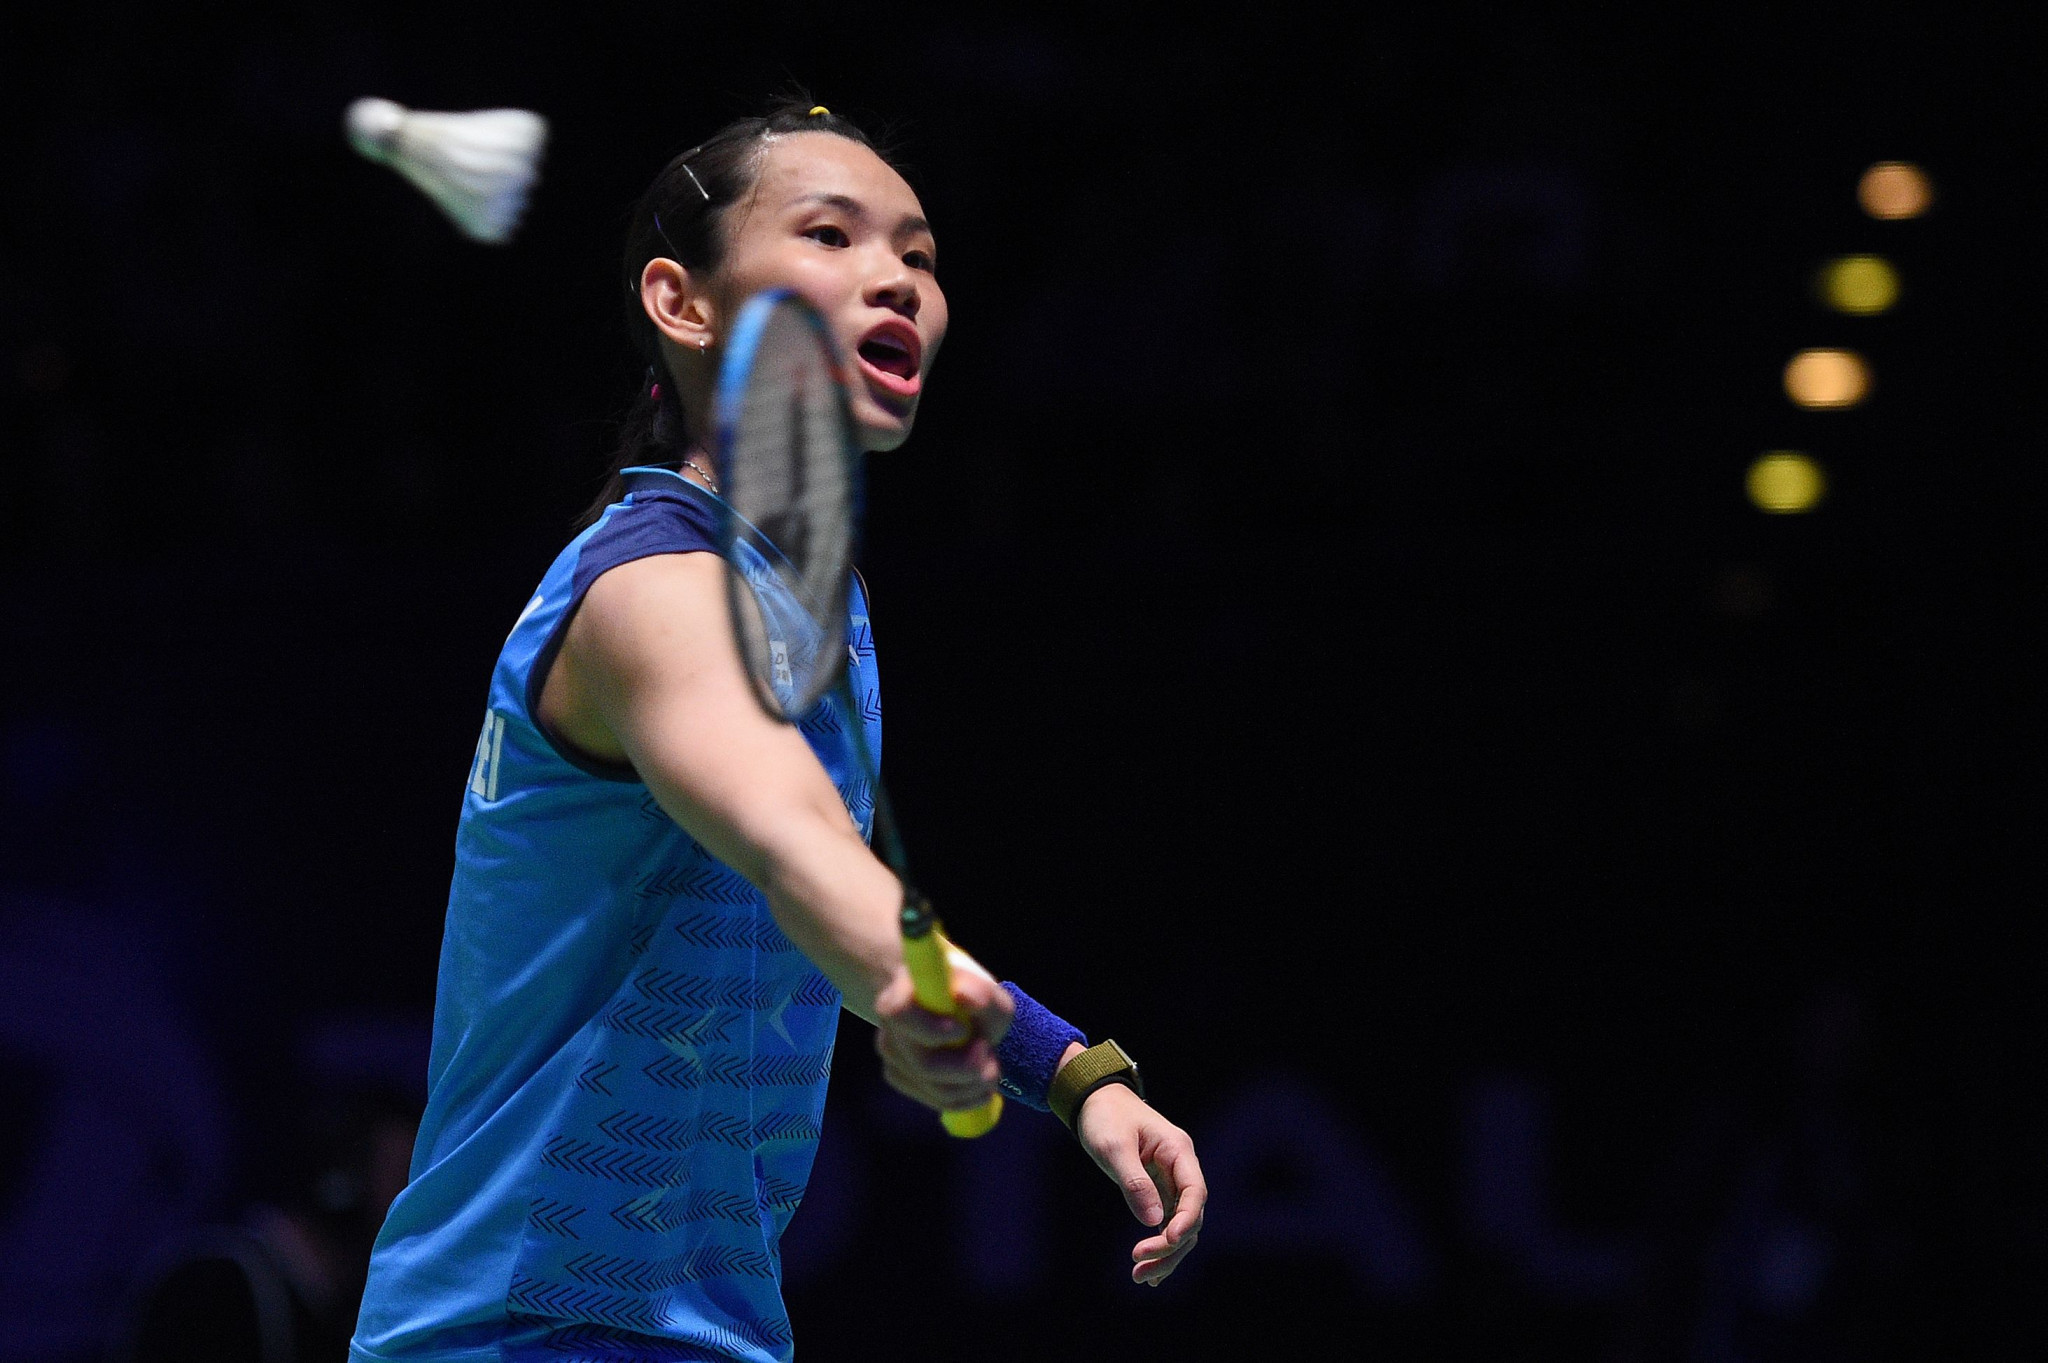 Chinese Taipei's Tai Tzu-ying remains on course for a third consecutive title at the All England Open ©Getty Images